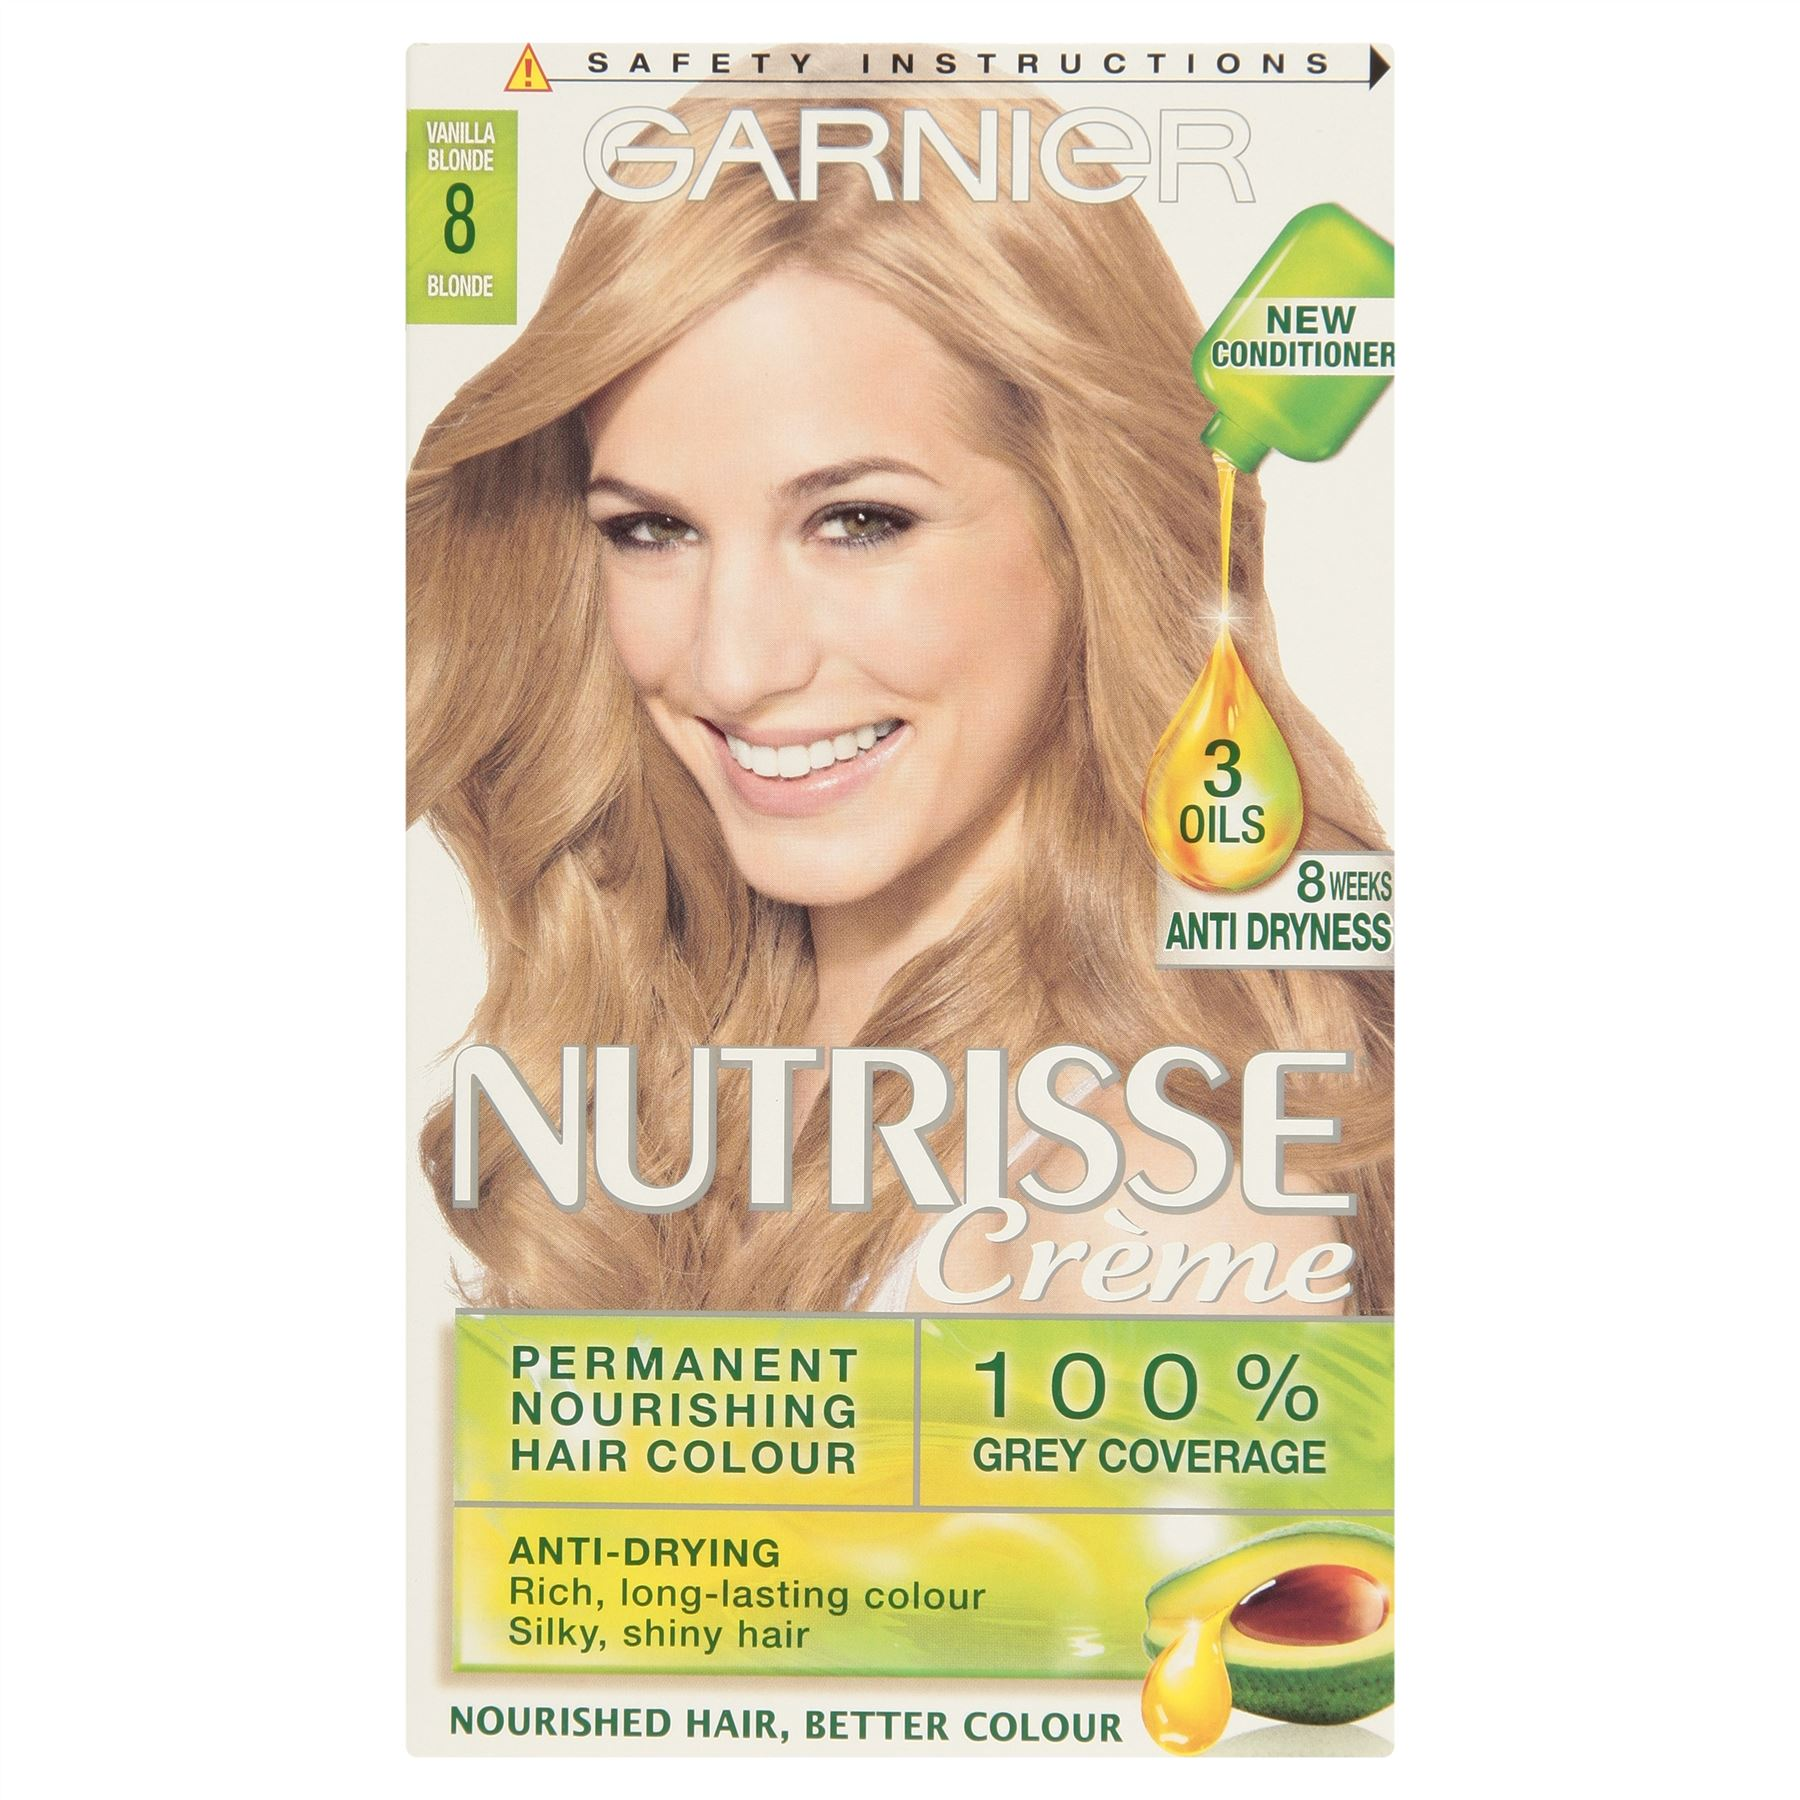 3 X Garnier Nutrisse Crme Permanent Hair Colour Vanilla Blonde 8